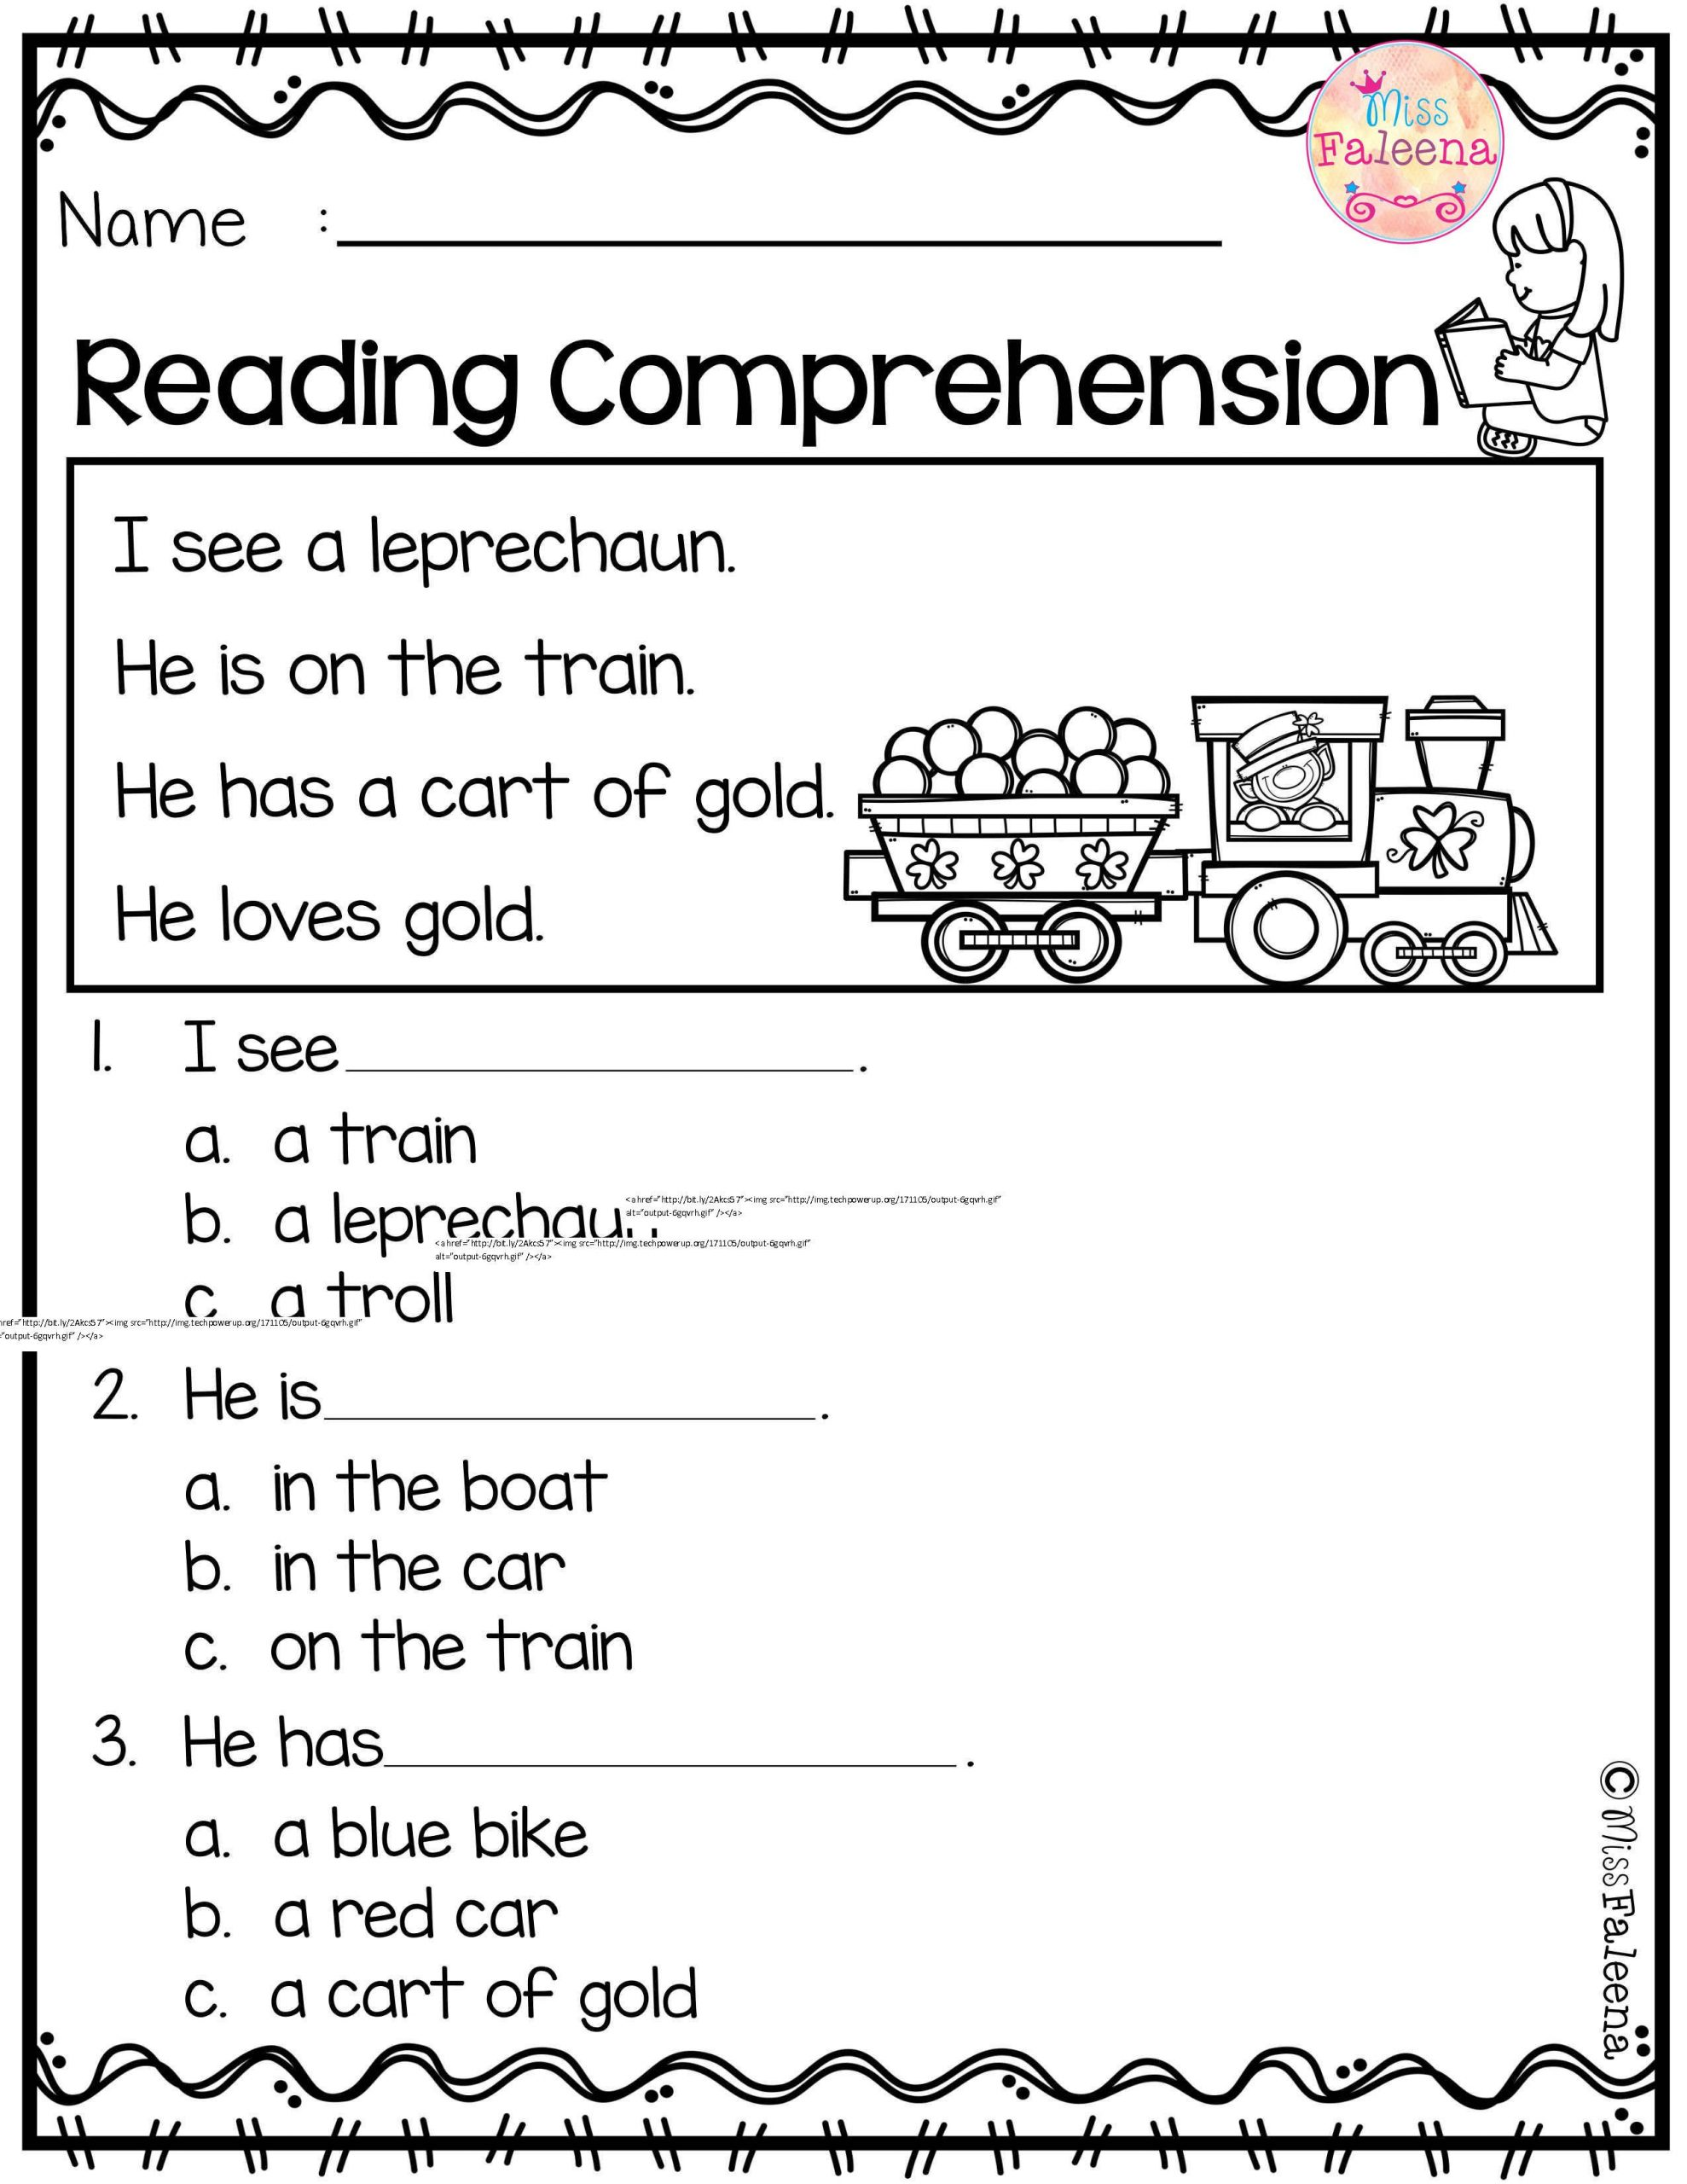 Preschool Reading Comprehension Worksheets March Reading Prehension